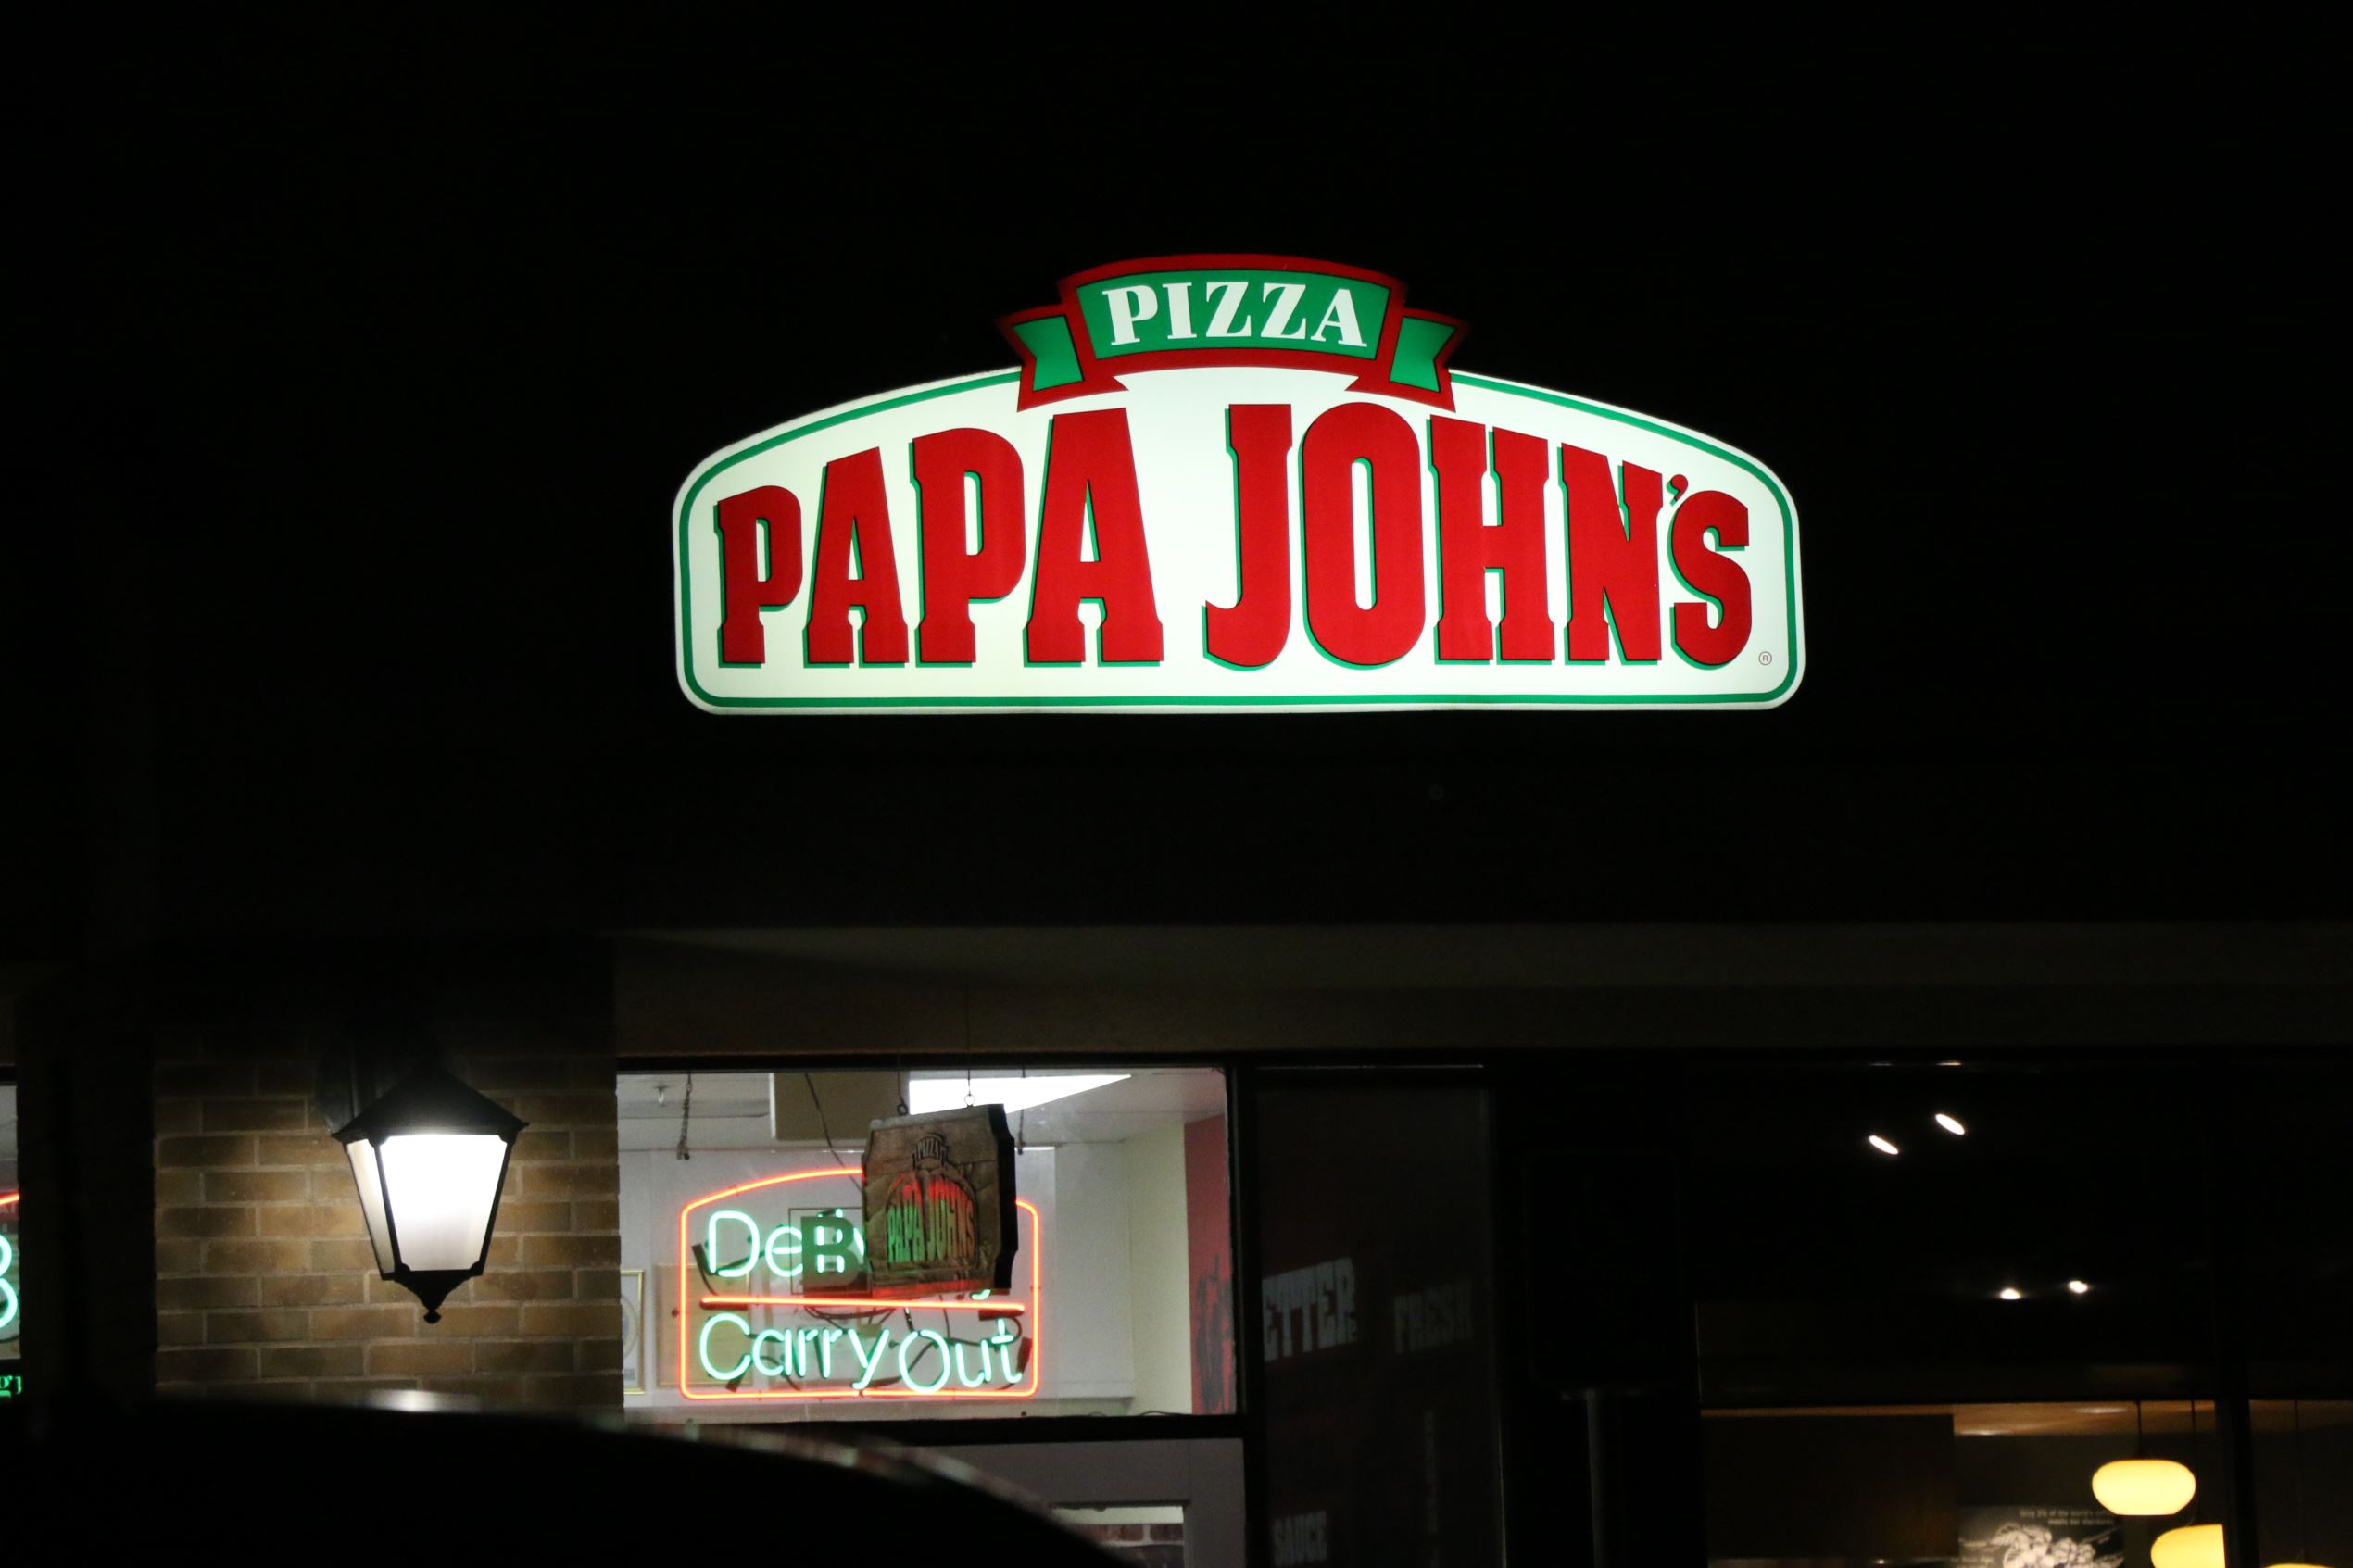 Papa Johns Pizza in Thousand Oaks, CA